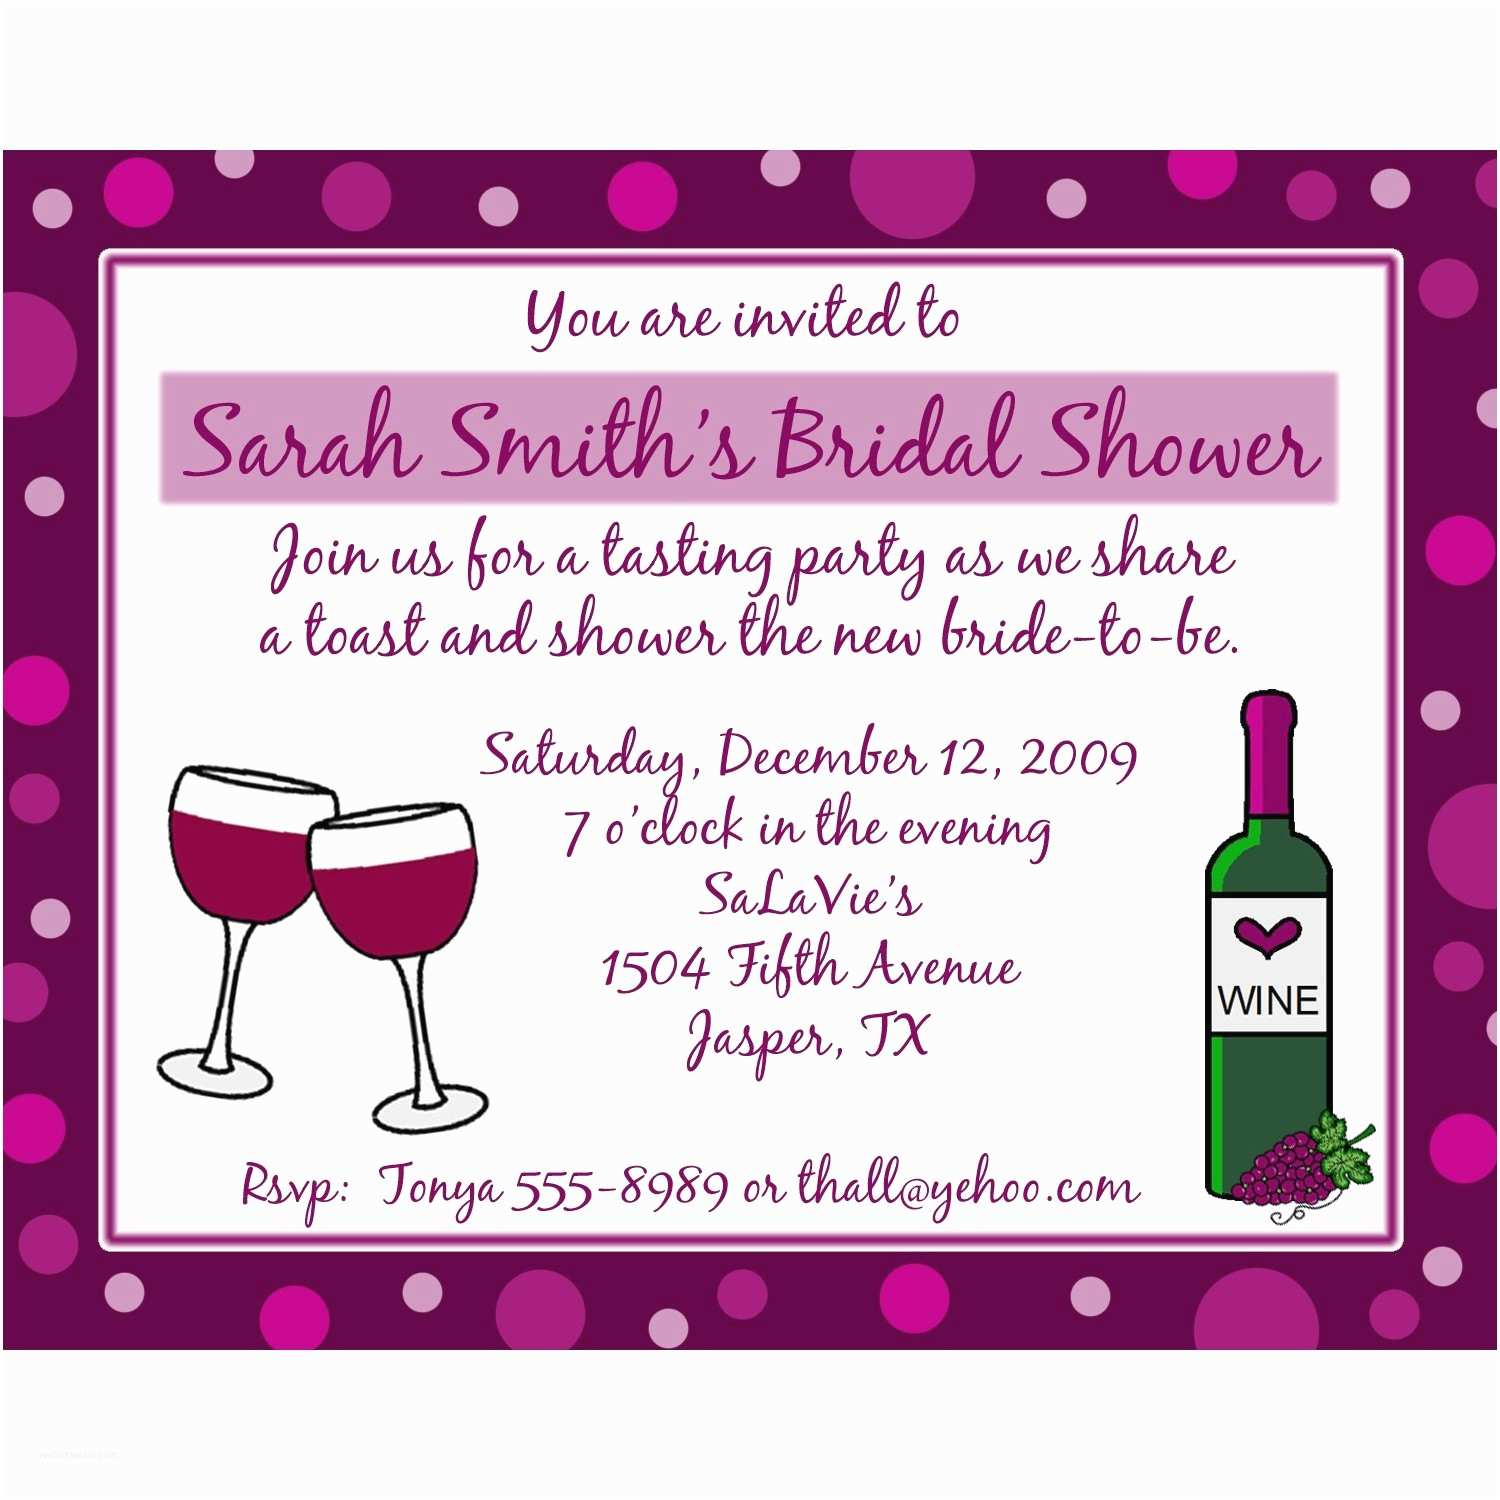 Wine themed Bridal Shower Invitations 20 Personalized Bridal Shower Invitations Wine theme